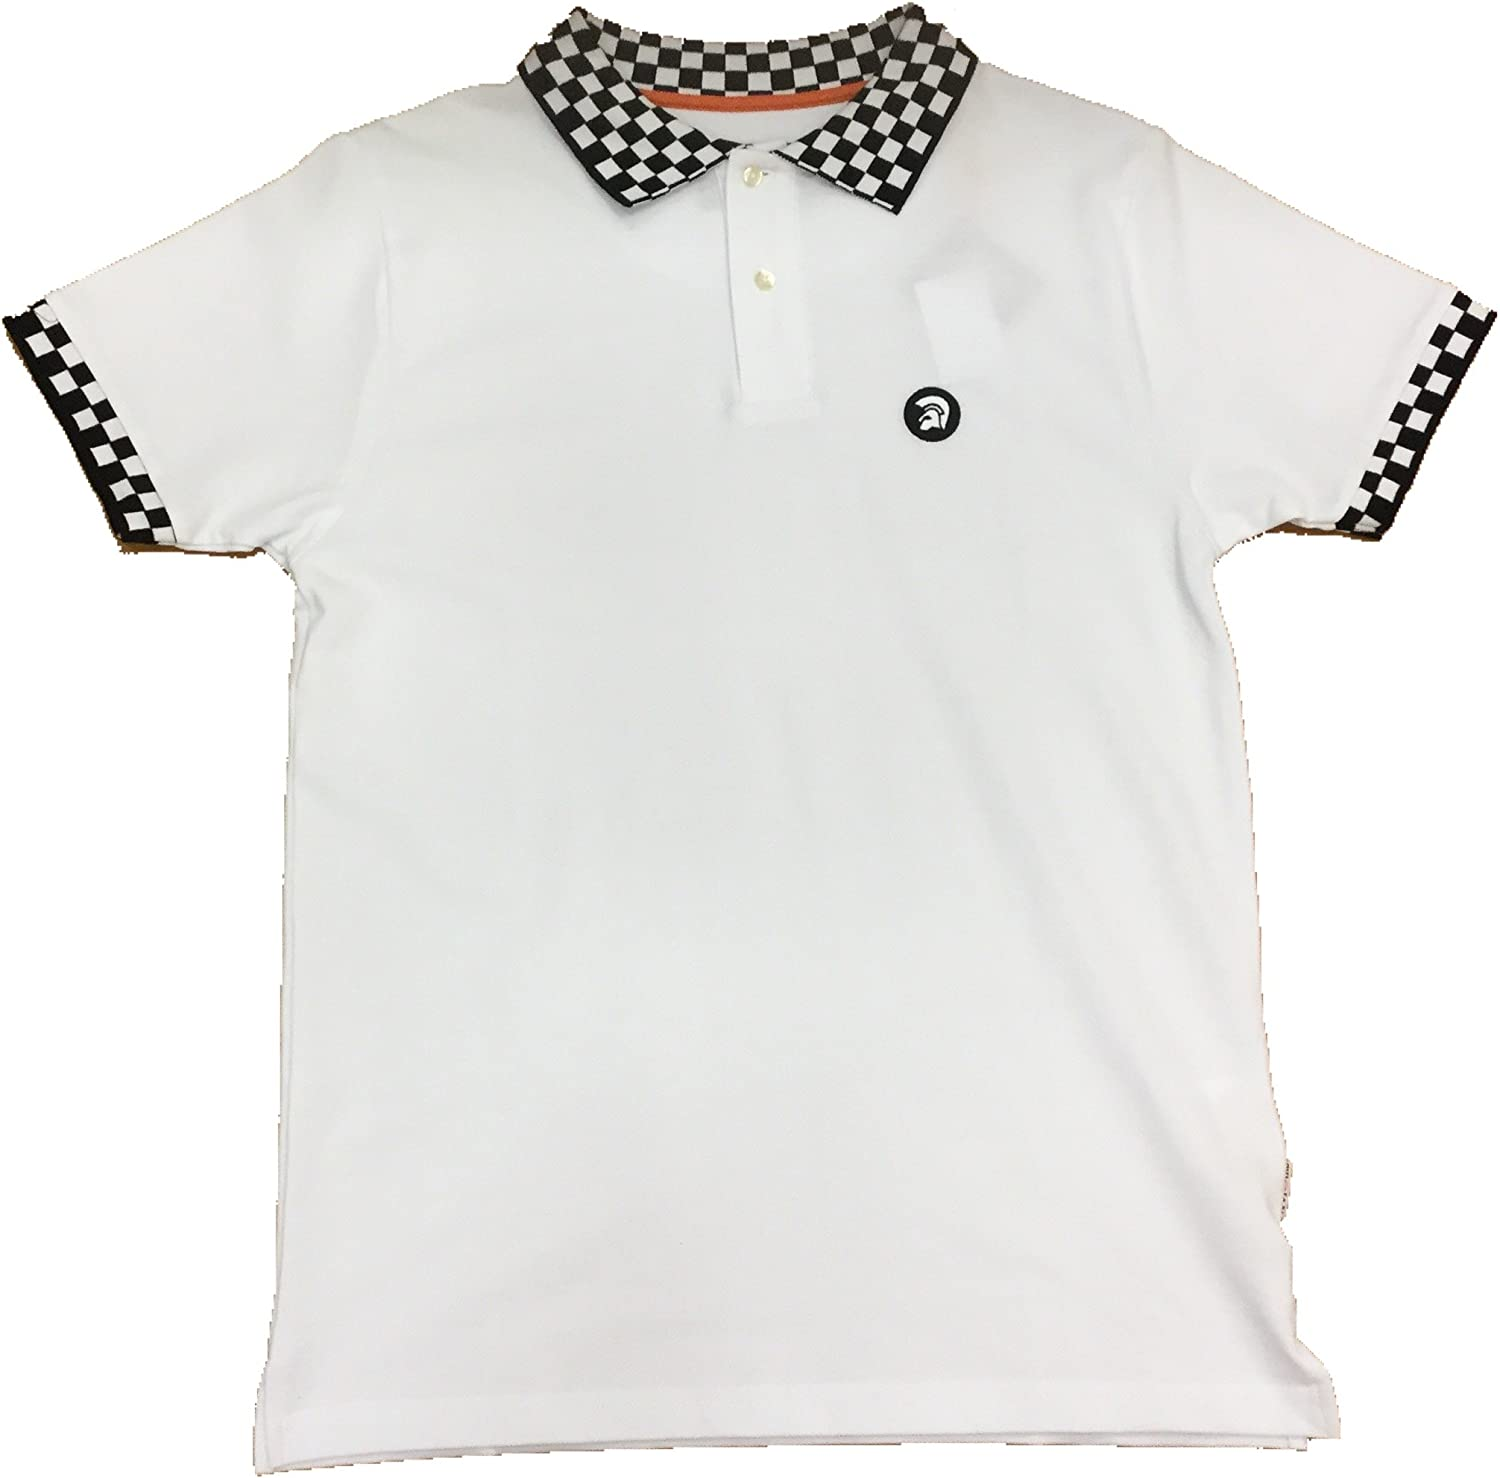 Trojan Records - Camiseta - para hombre blanco crudo M: Amazon.es ...